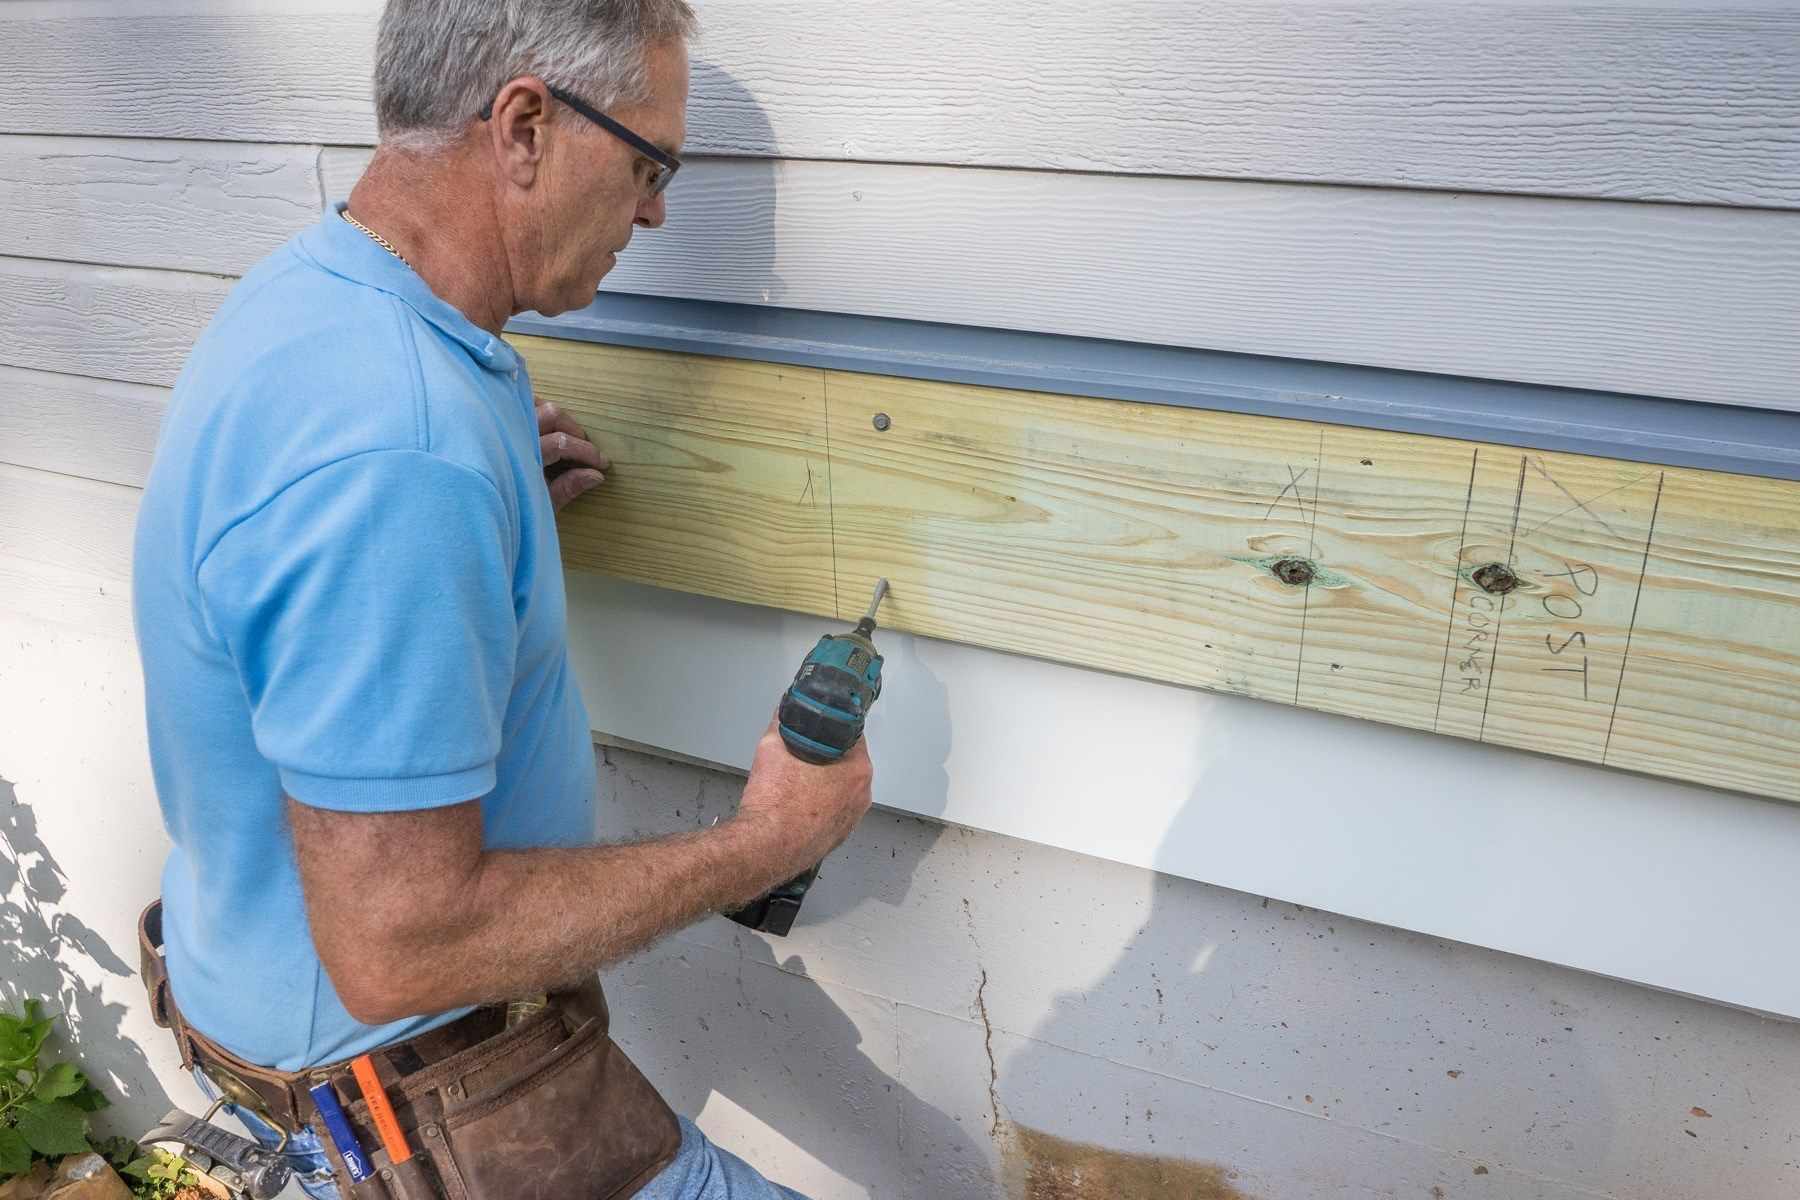 Learn How To Properly Install A Waterproof Deck Ledger Board Using Flashing  And Fasteners Check Out